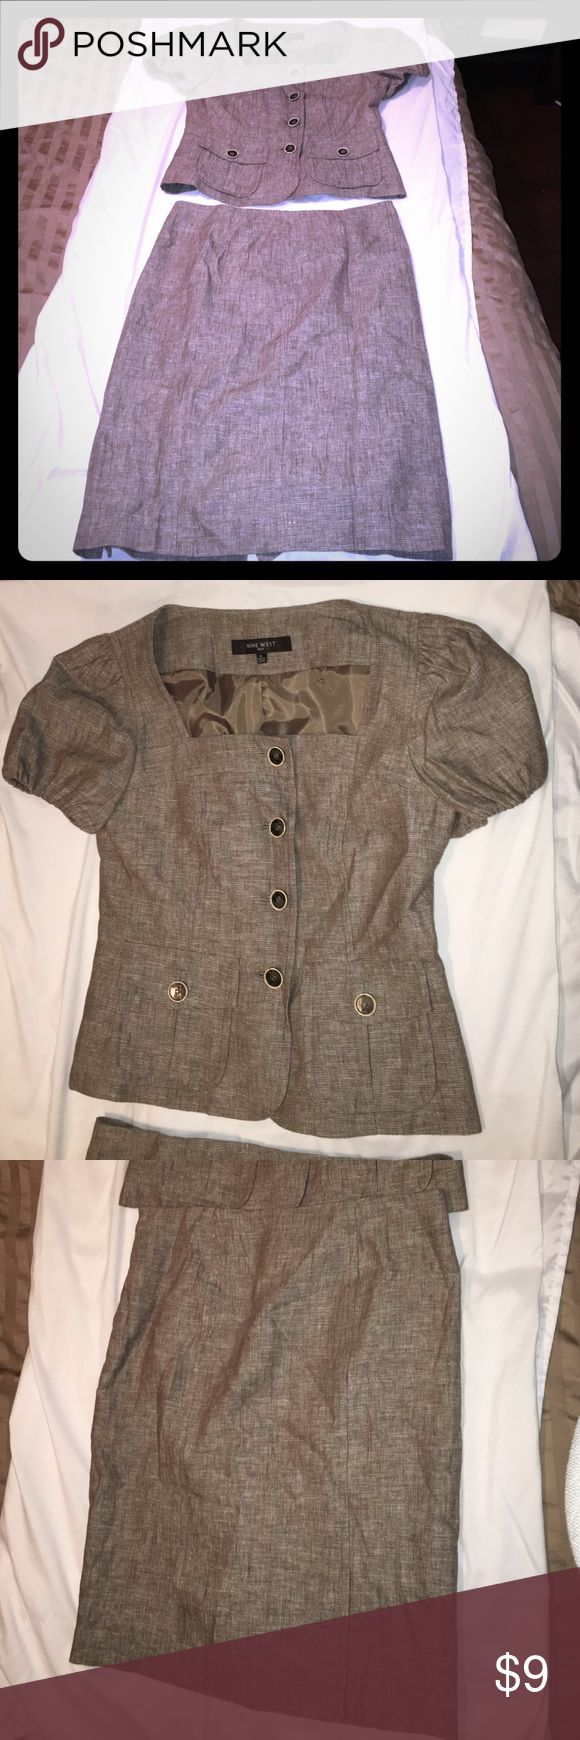 Like new Nine West skirt suit Great condition worn once. Light tweed, linen woven. Short sleeve blazer. Nice length skirt. Very sharp and classic Nine West Skirts Skirt Sets